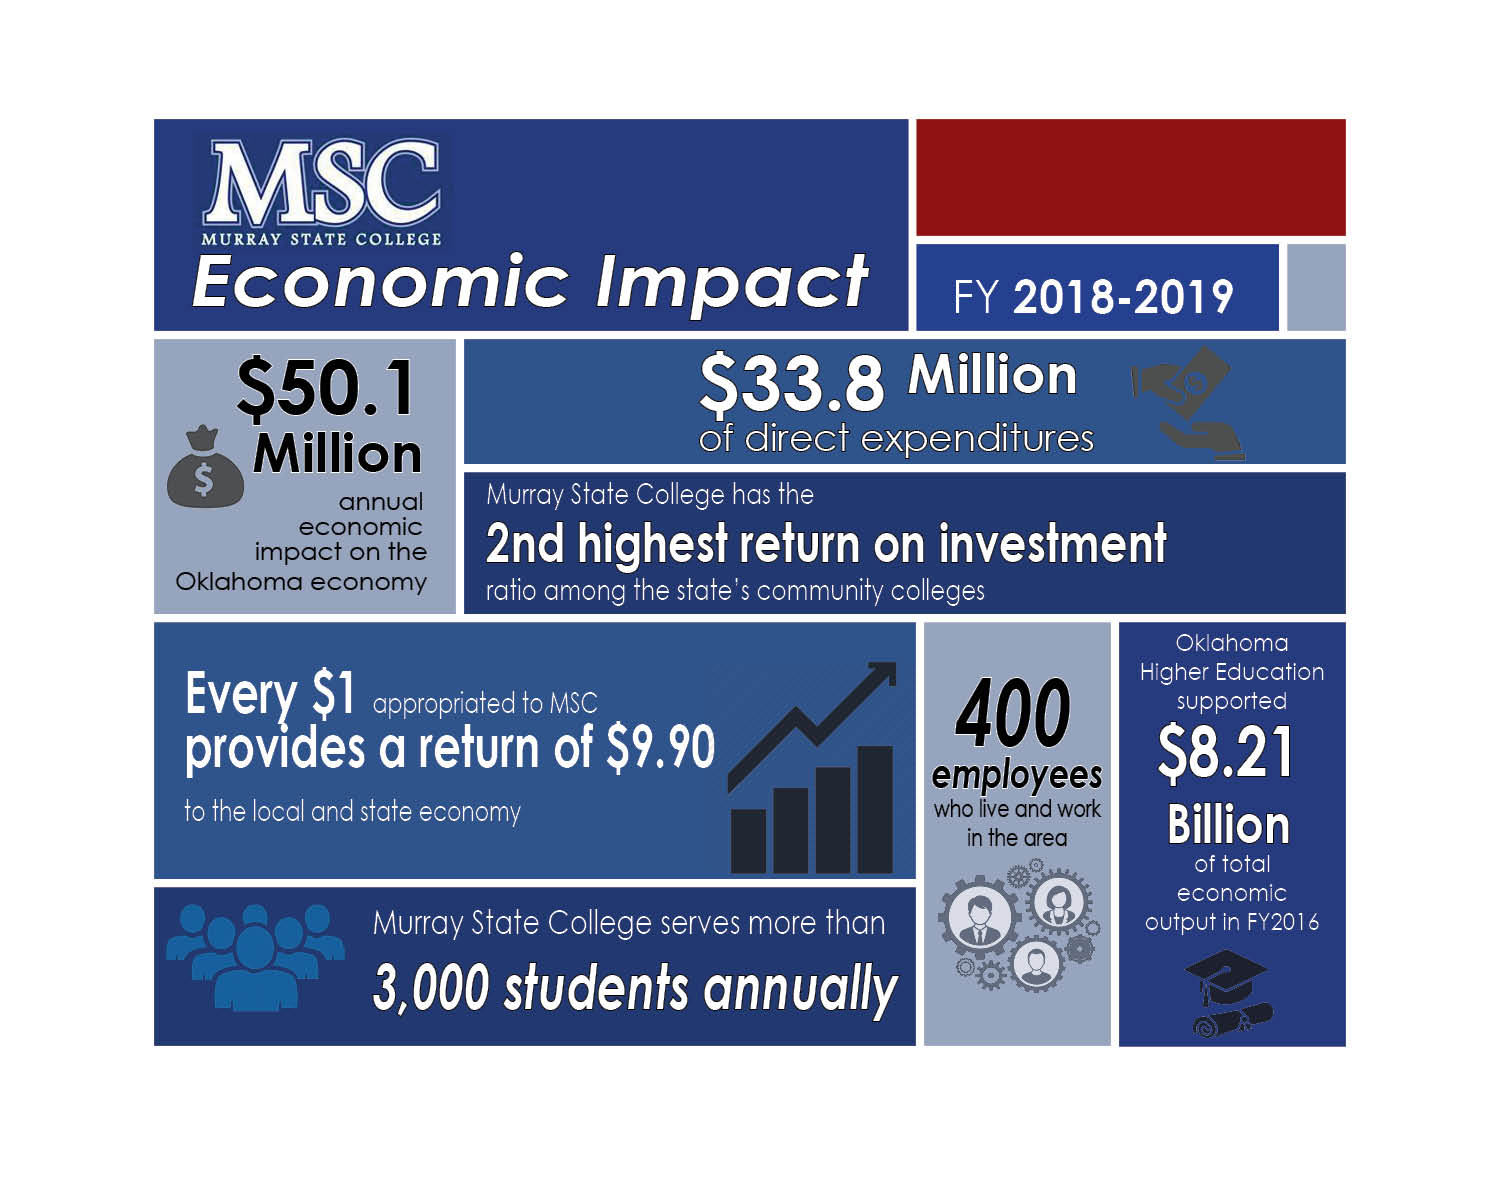 Murray State College generates over $50 million economic impact to service area